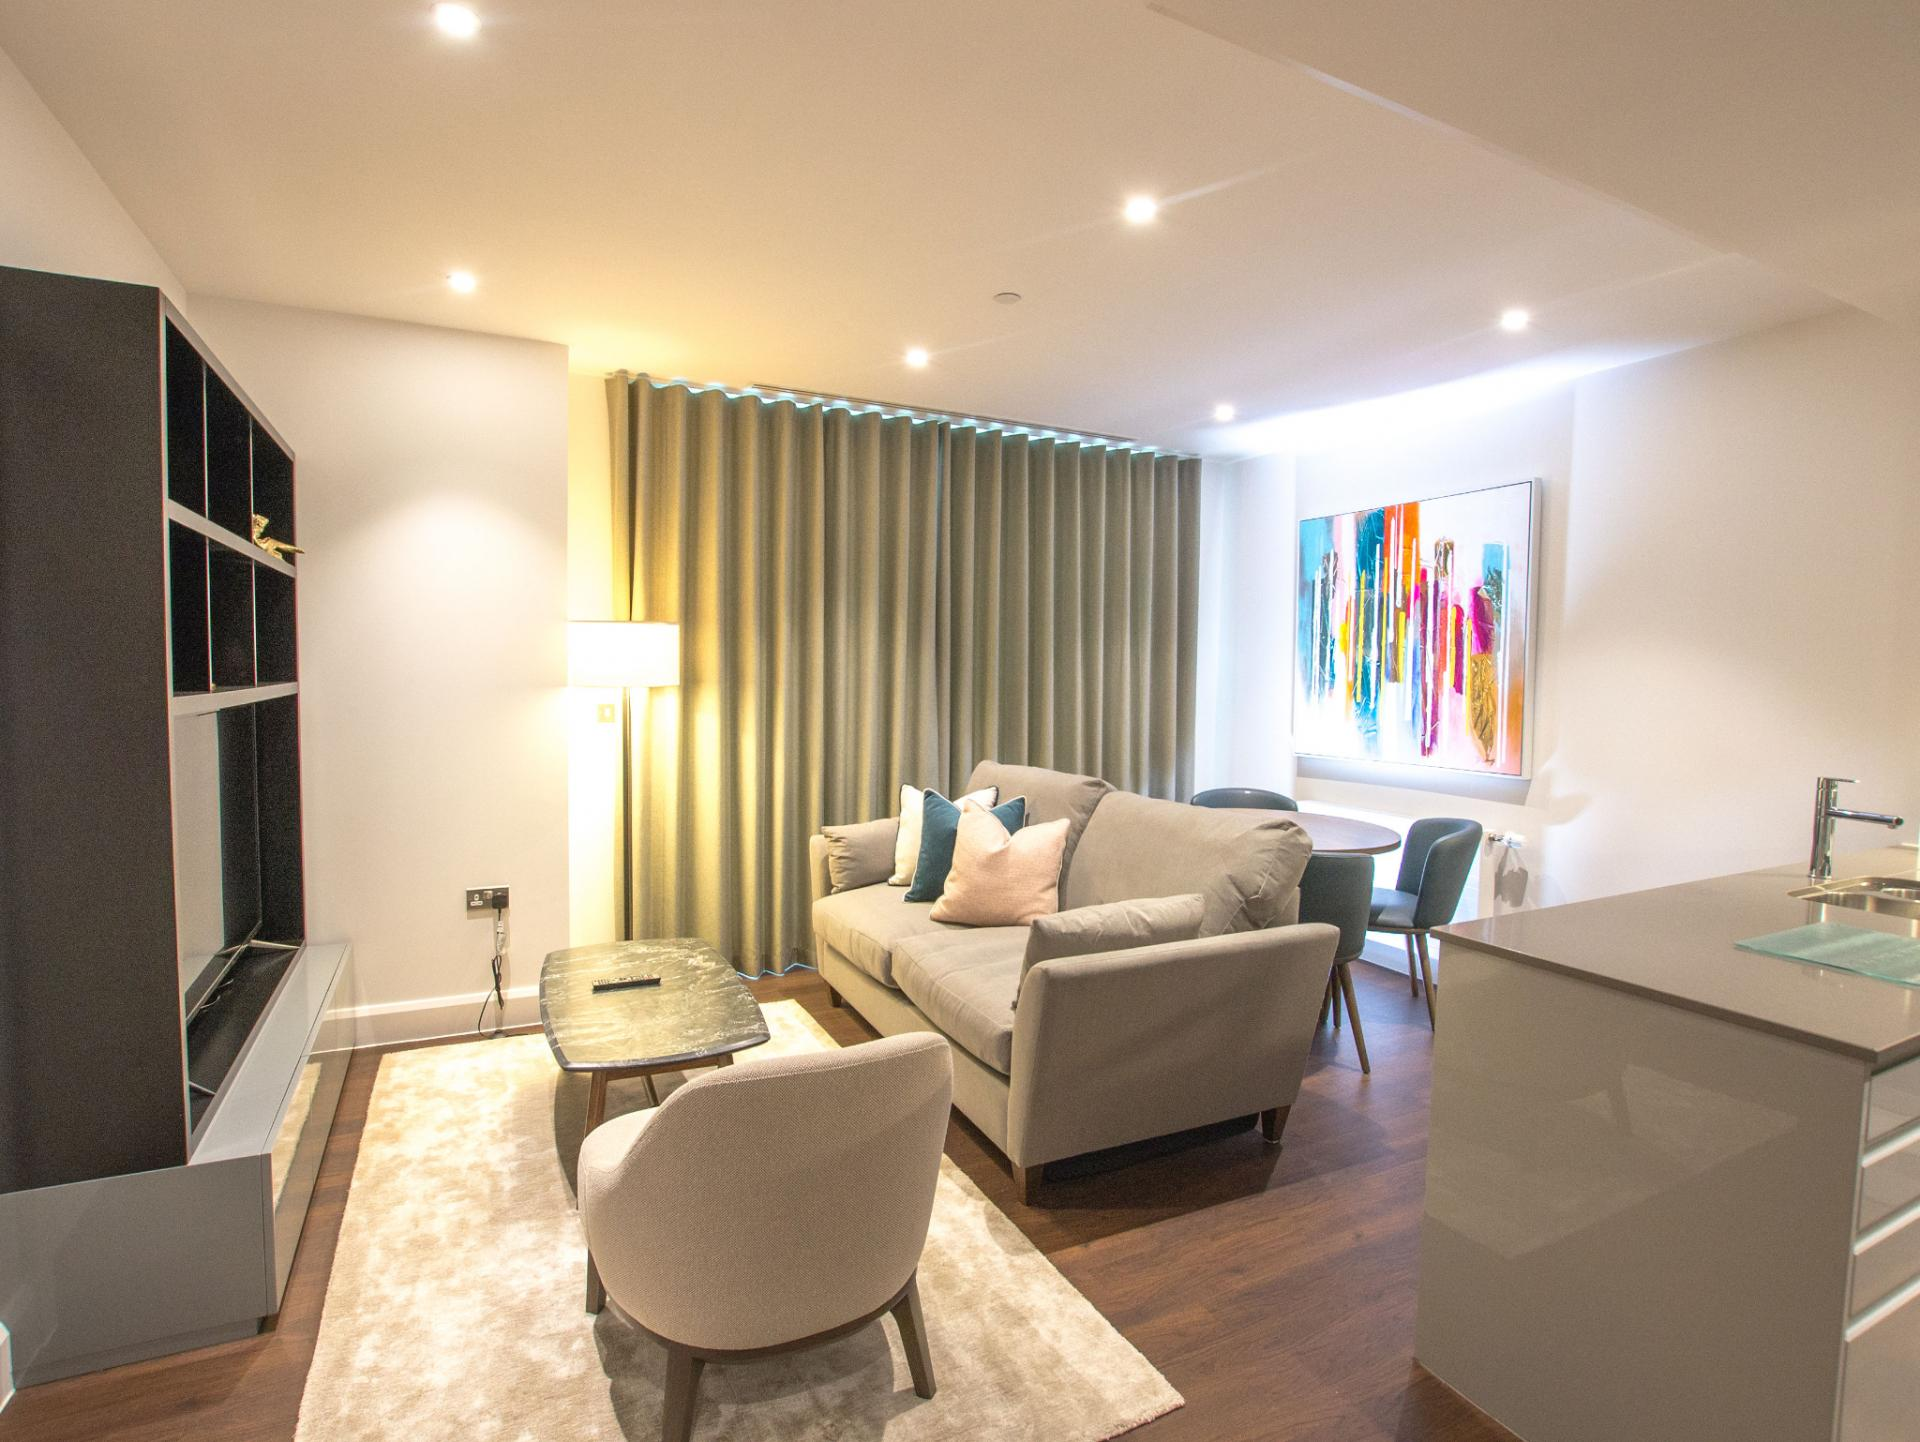 Living area at Canary Wharf Apartments By Charles Hope, Canary Wharf, London - Citybase Apartments